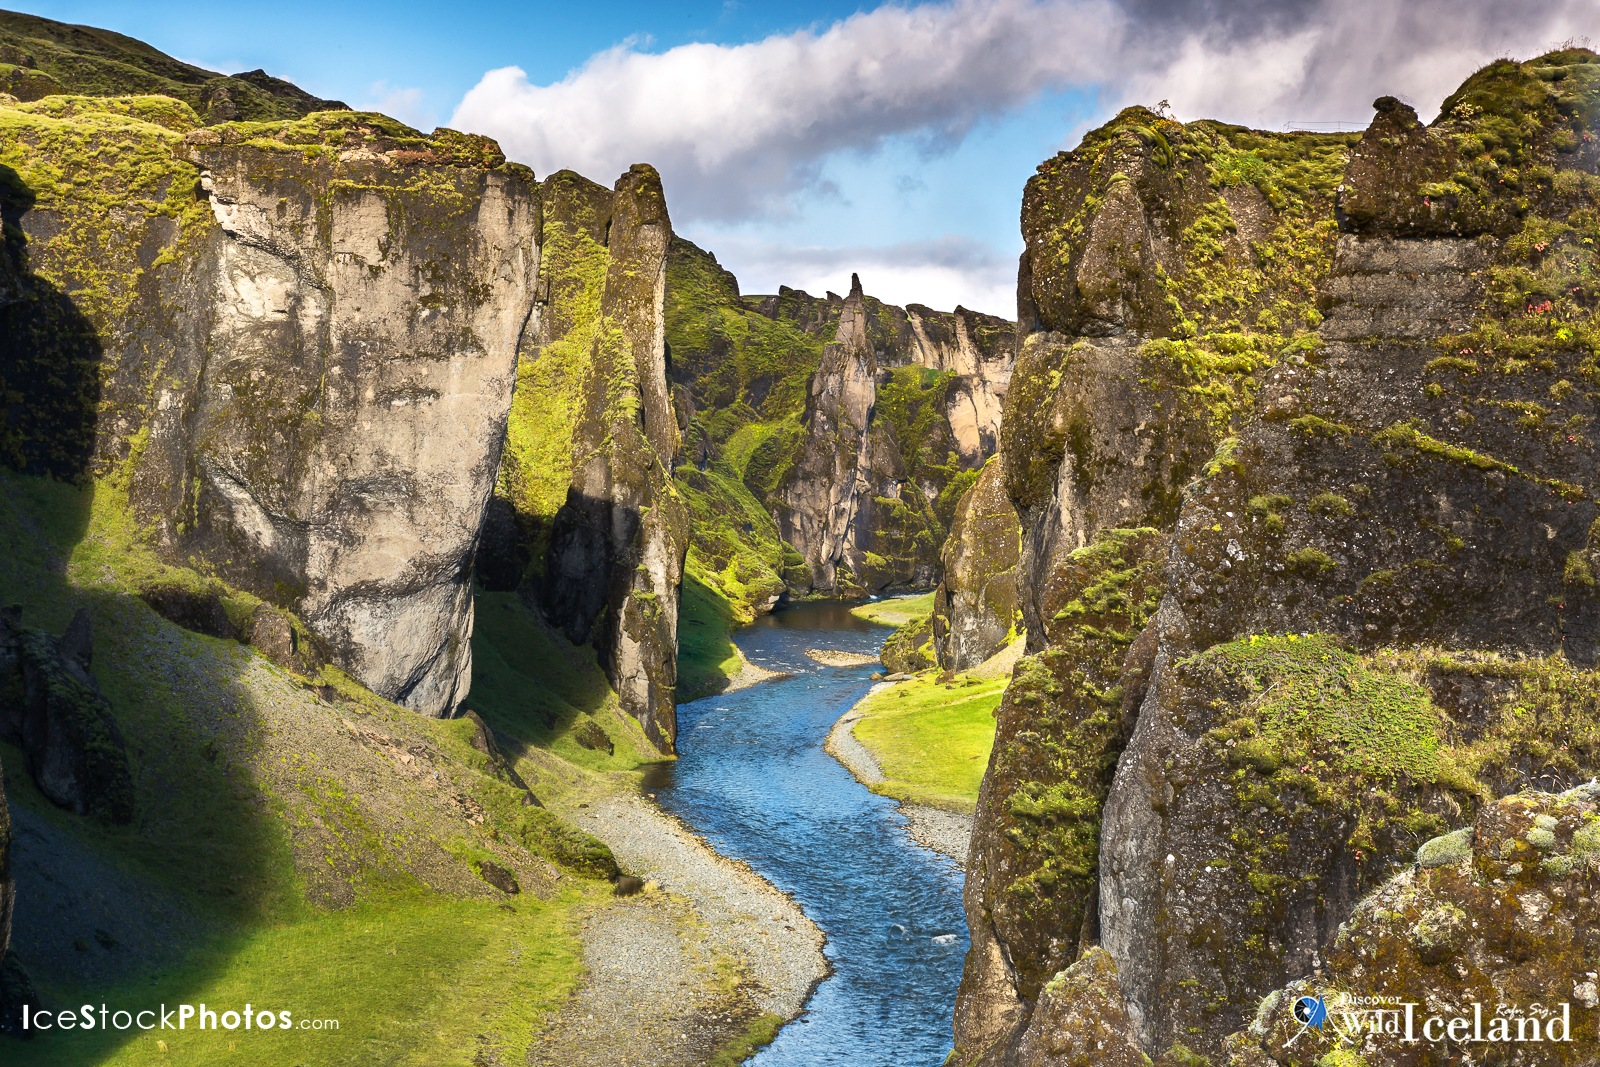 One from the Icelandic Stock Photo web: - Fjaðrárgljúfur Canyon by Rafn Sig,-  @ Discover Wild Iceland.com